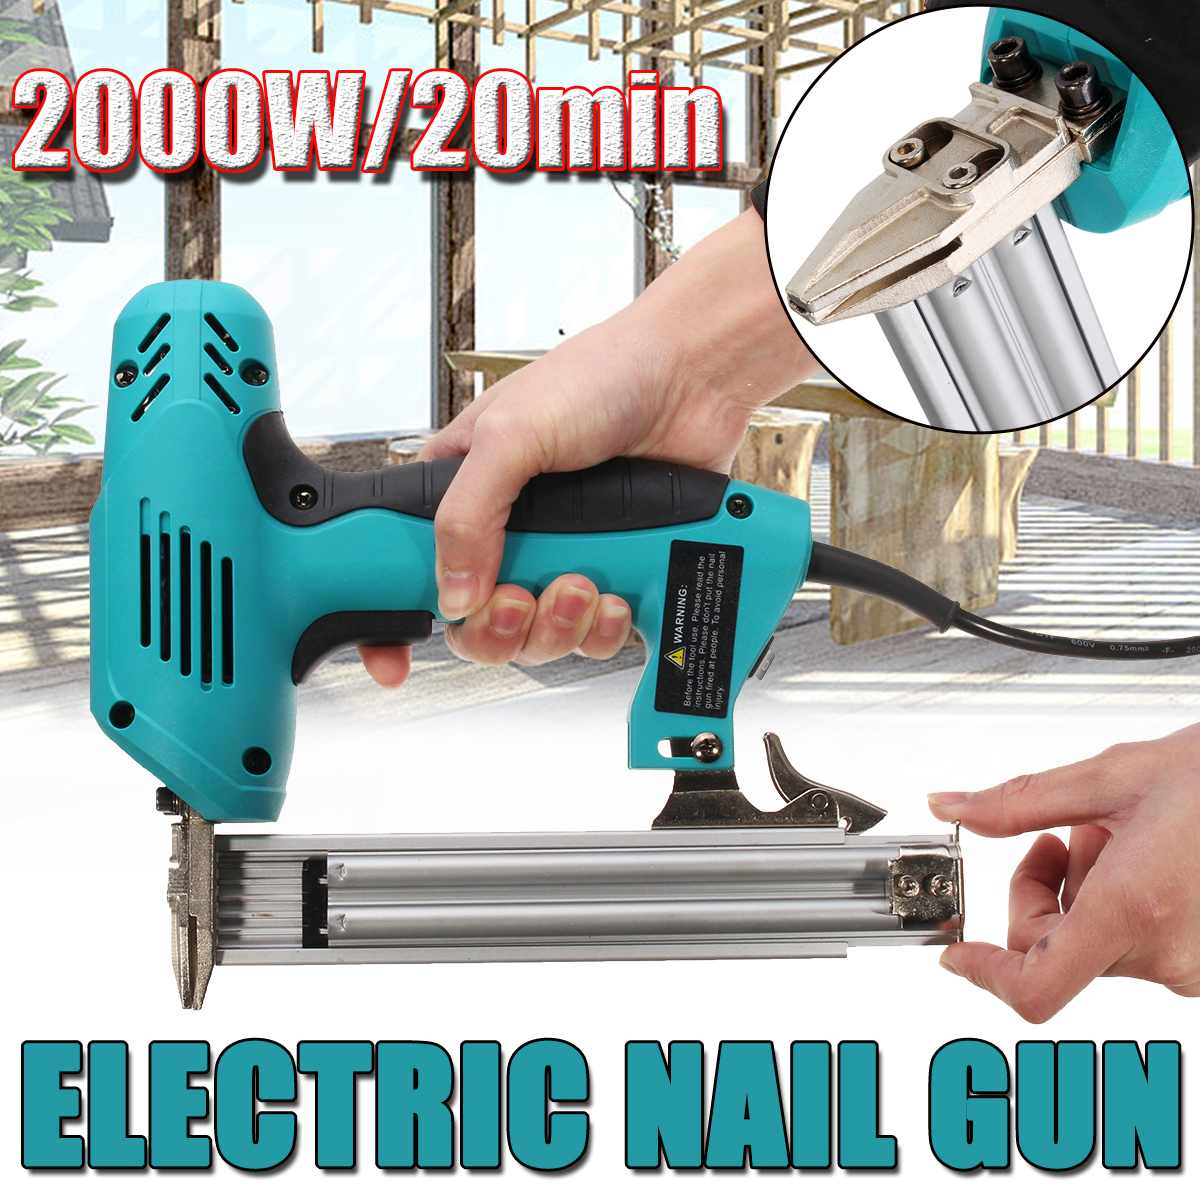 New Electric Straight Nail-Gun 10-30mm Heavy-Duty Woodworking Tool Electrical Staple Nail 220V 2000W